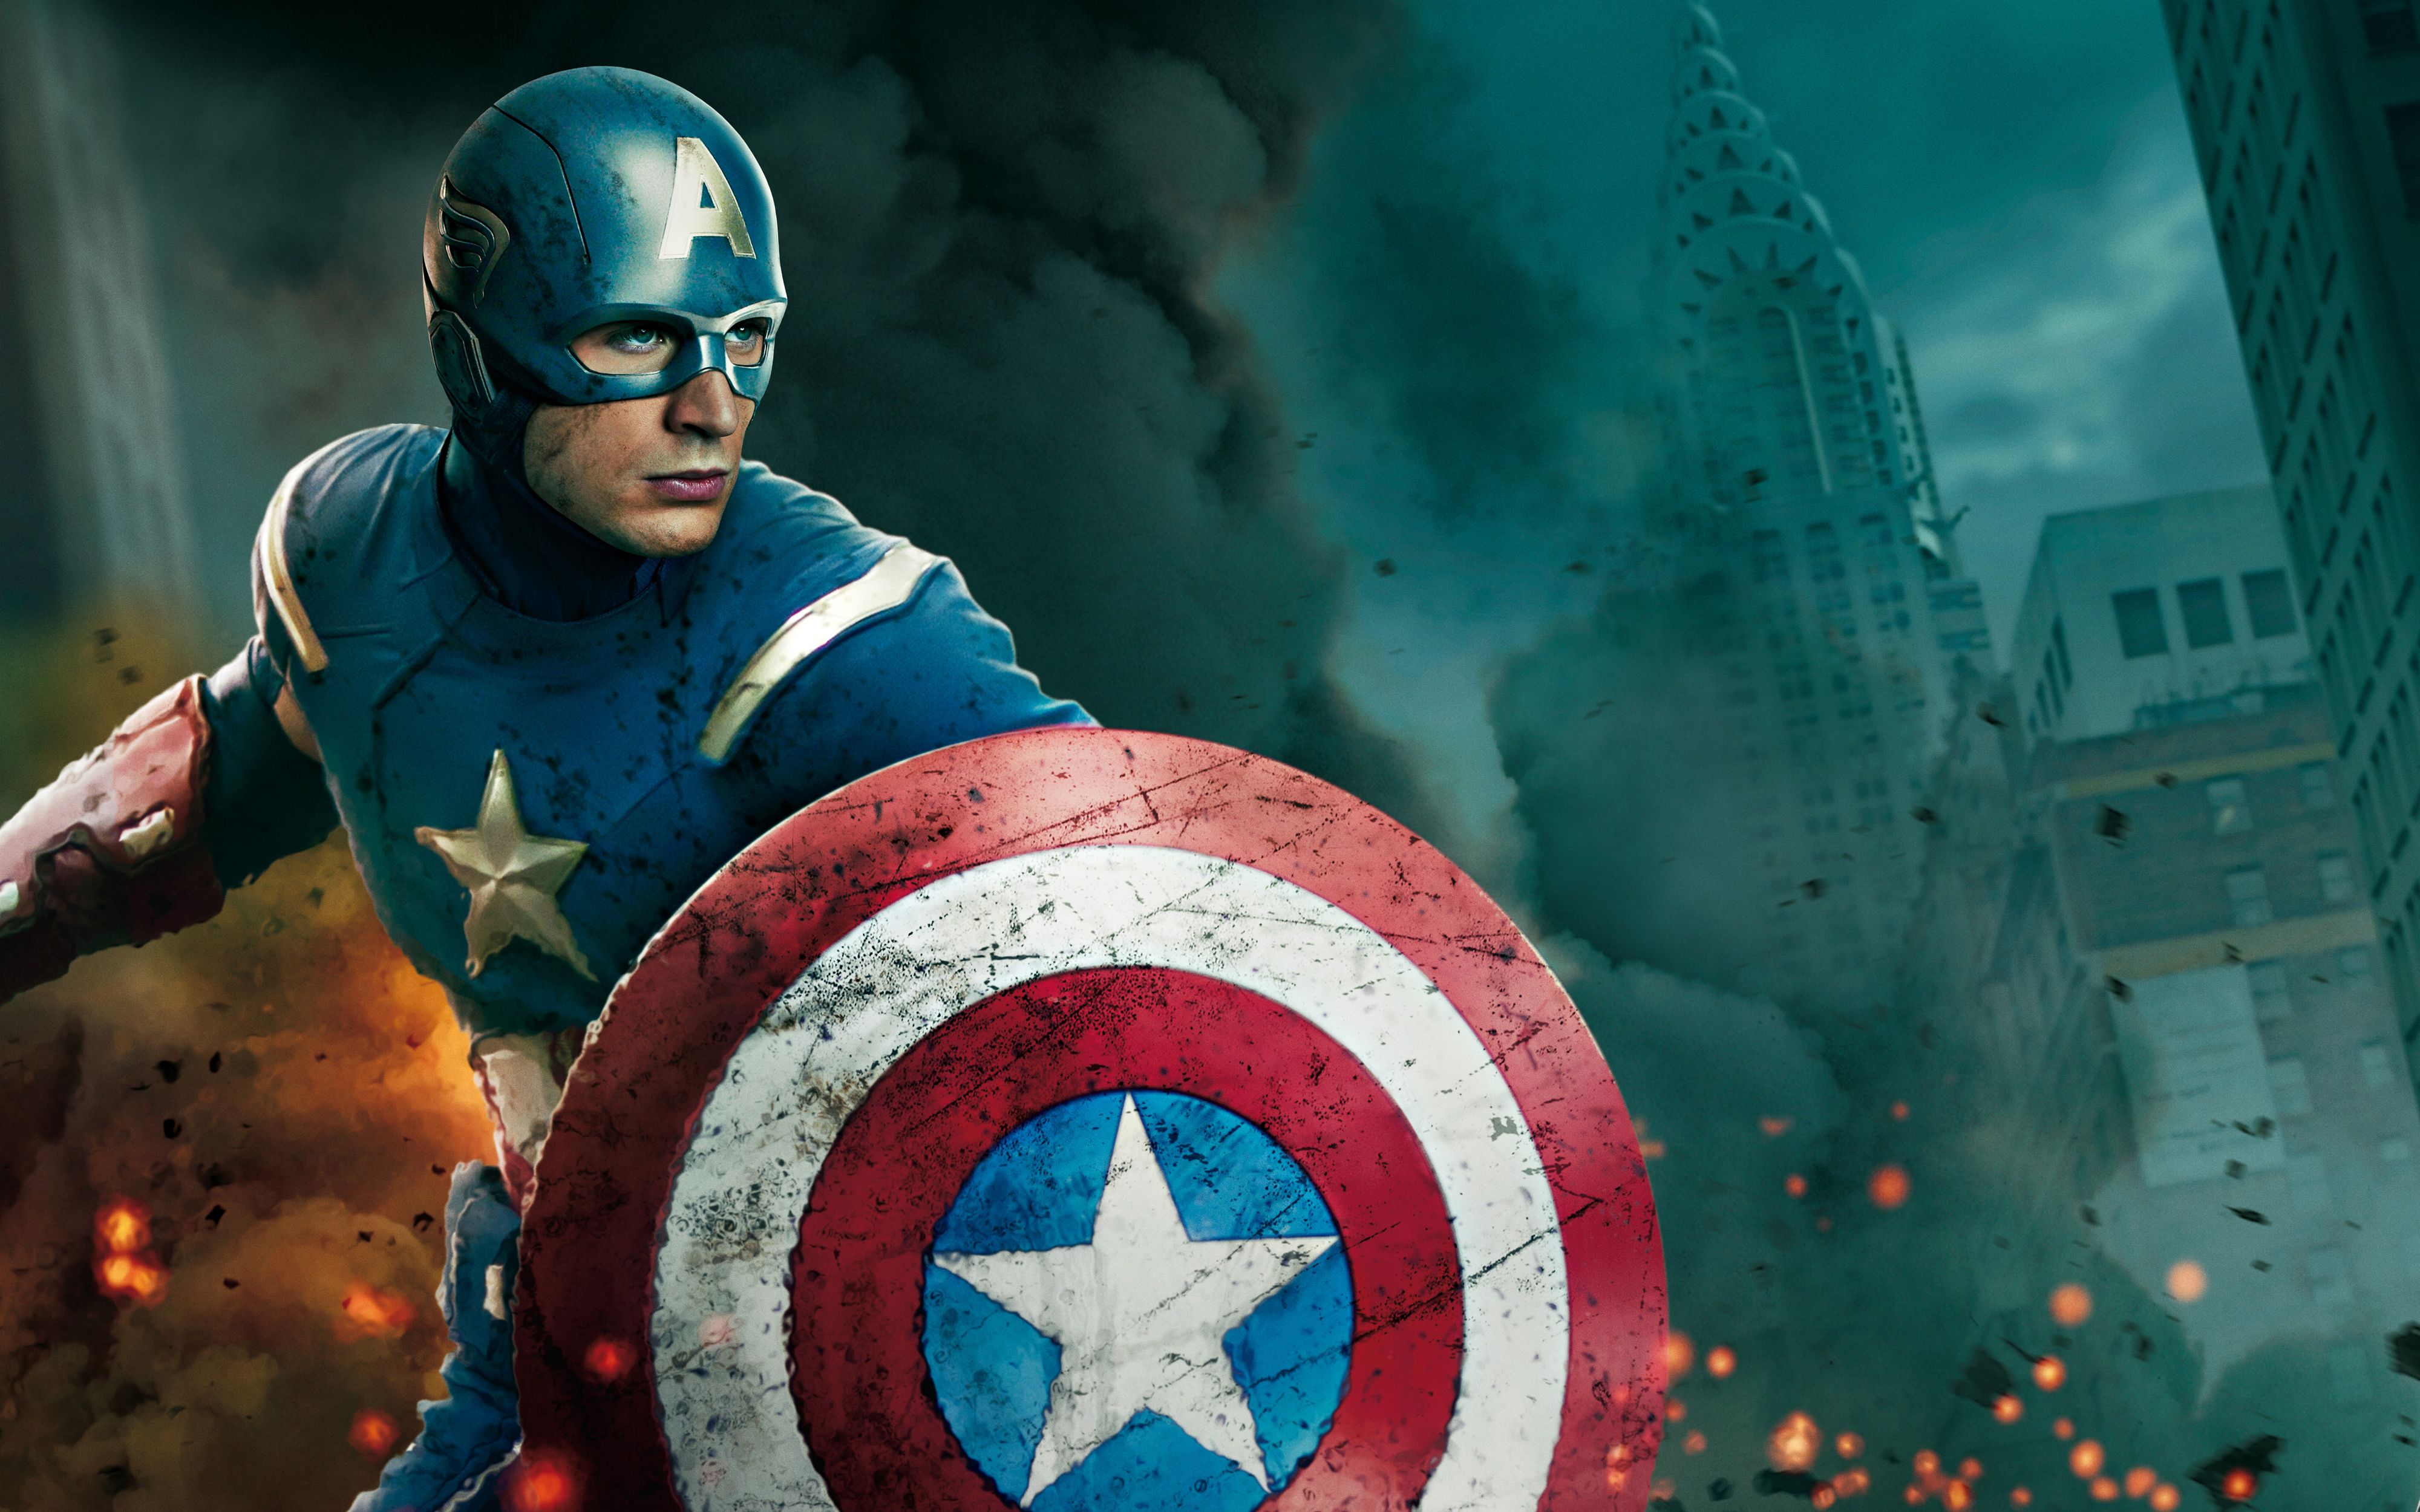 Action Movie Captain America Wallpaper